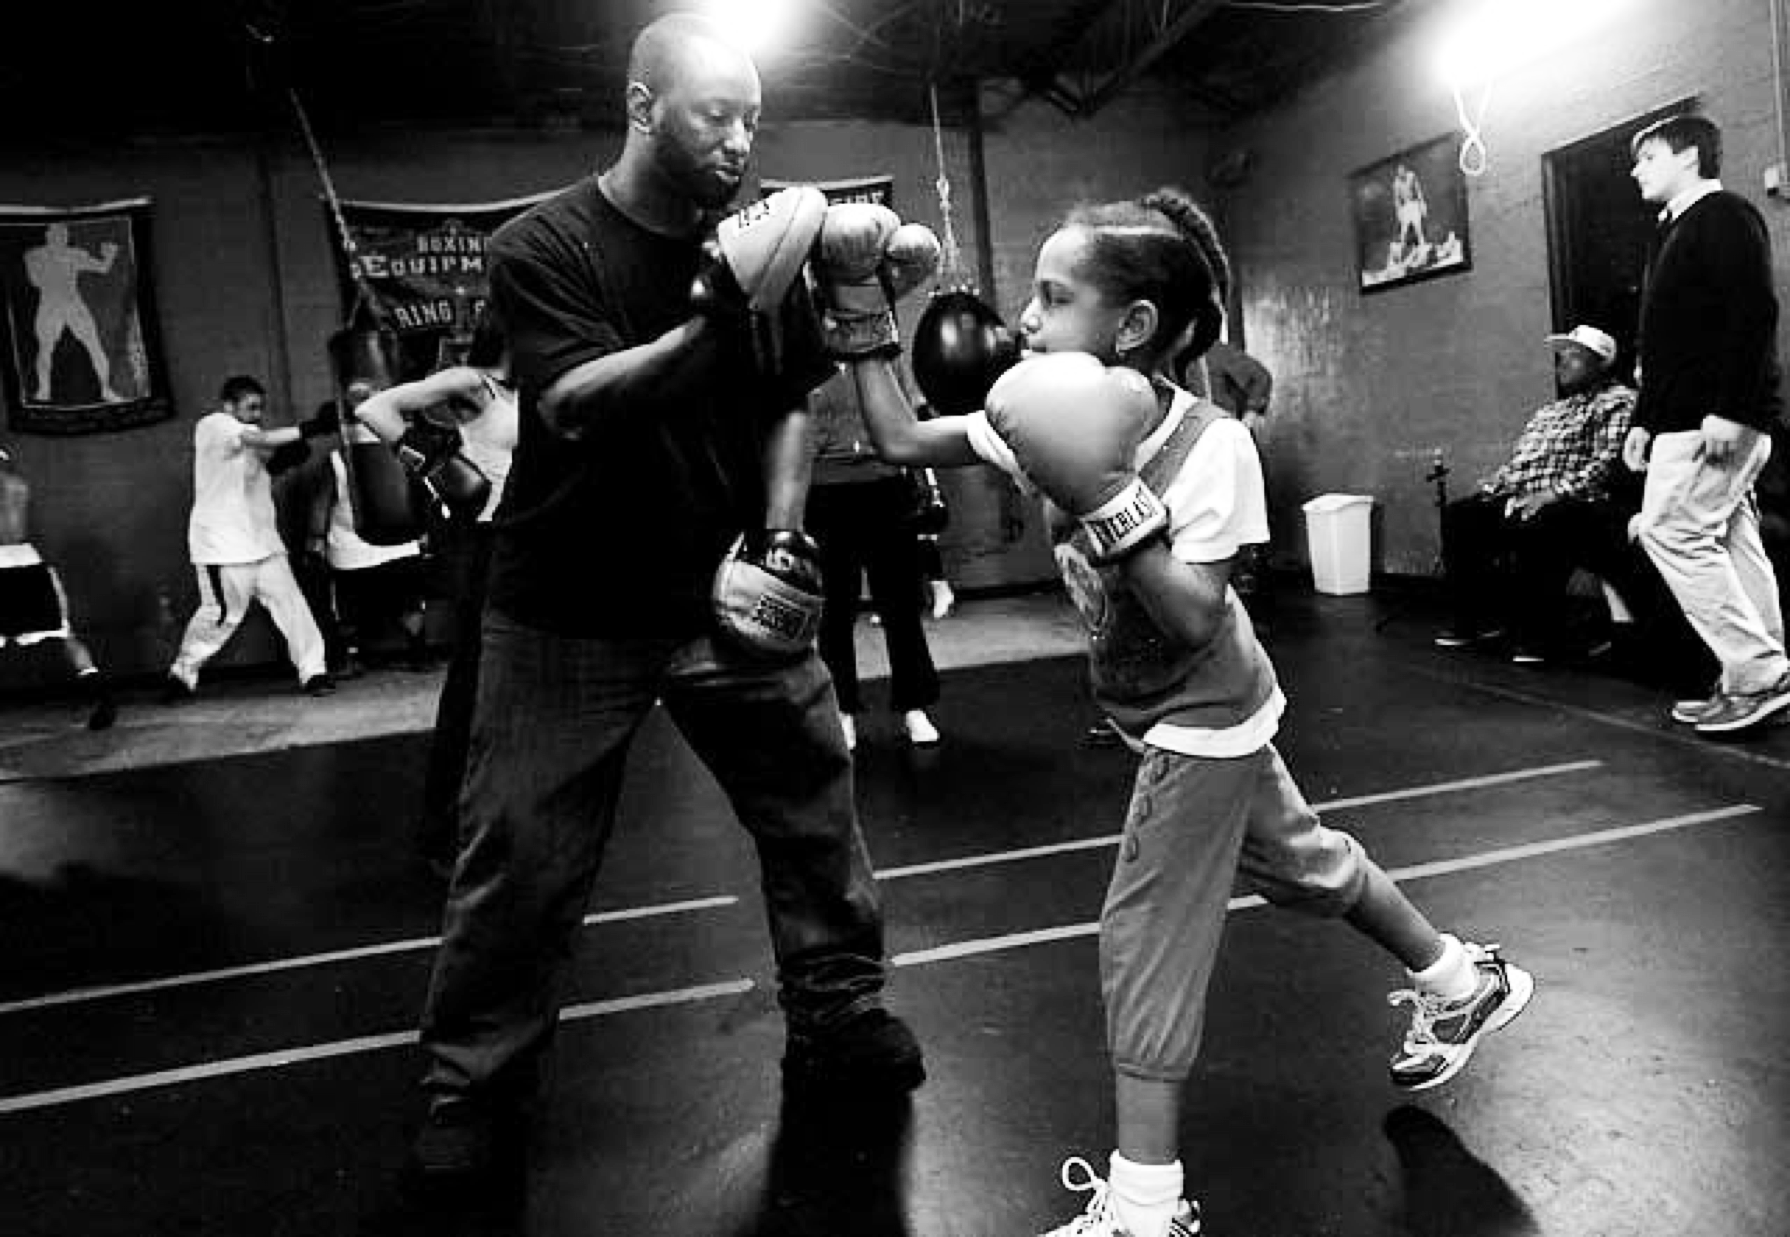 Khali Sweeney stands in the gym, helping a young female child boxer work her gloves. There are boxers working on equipment in the background.